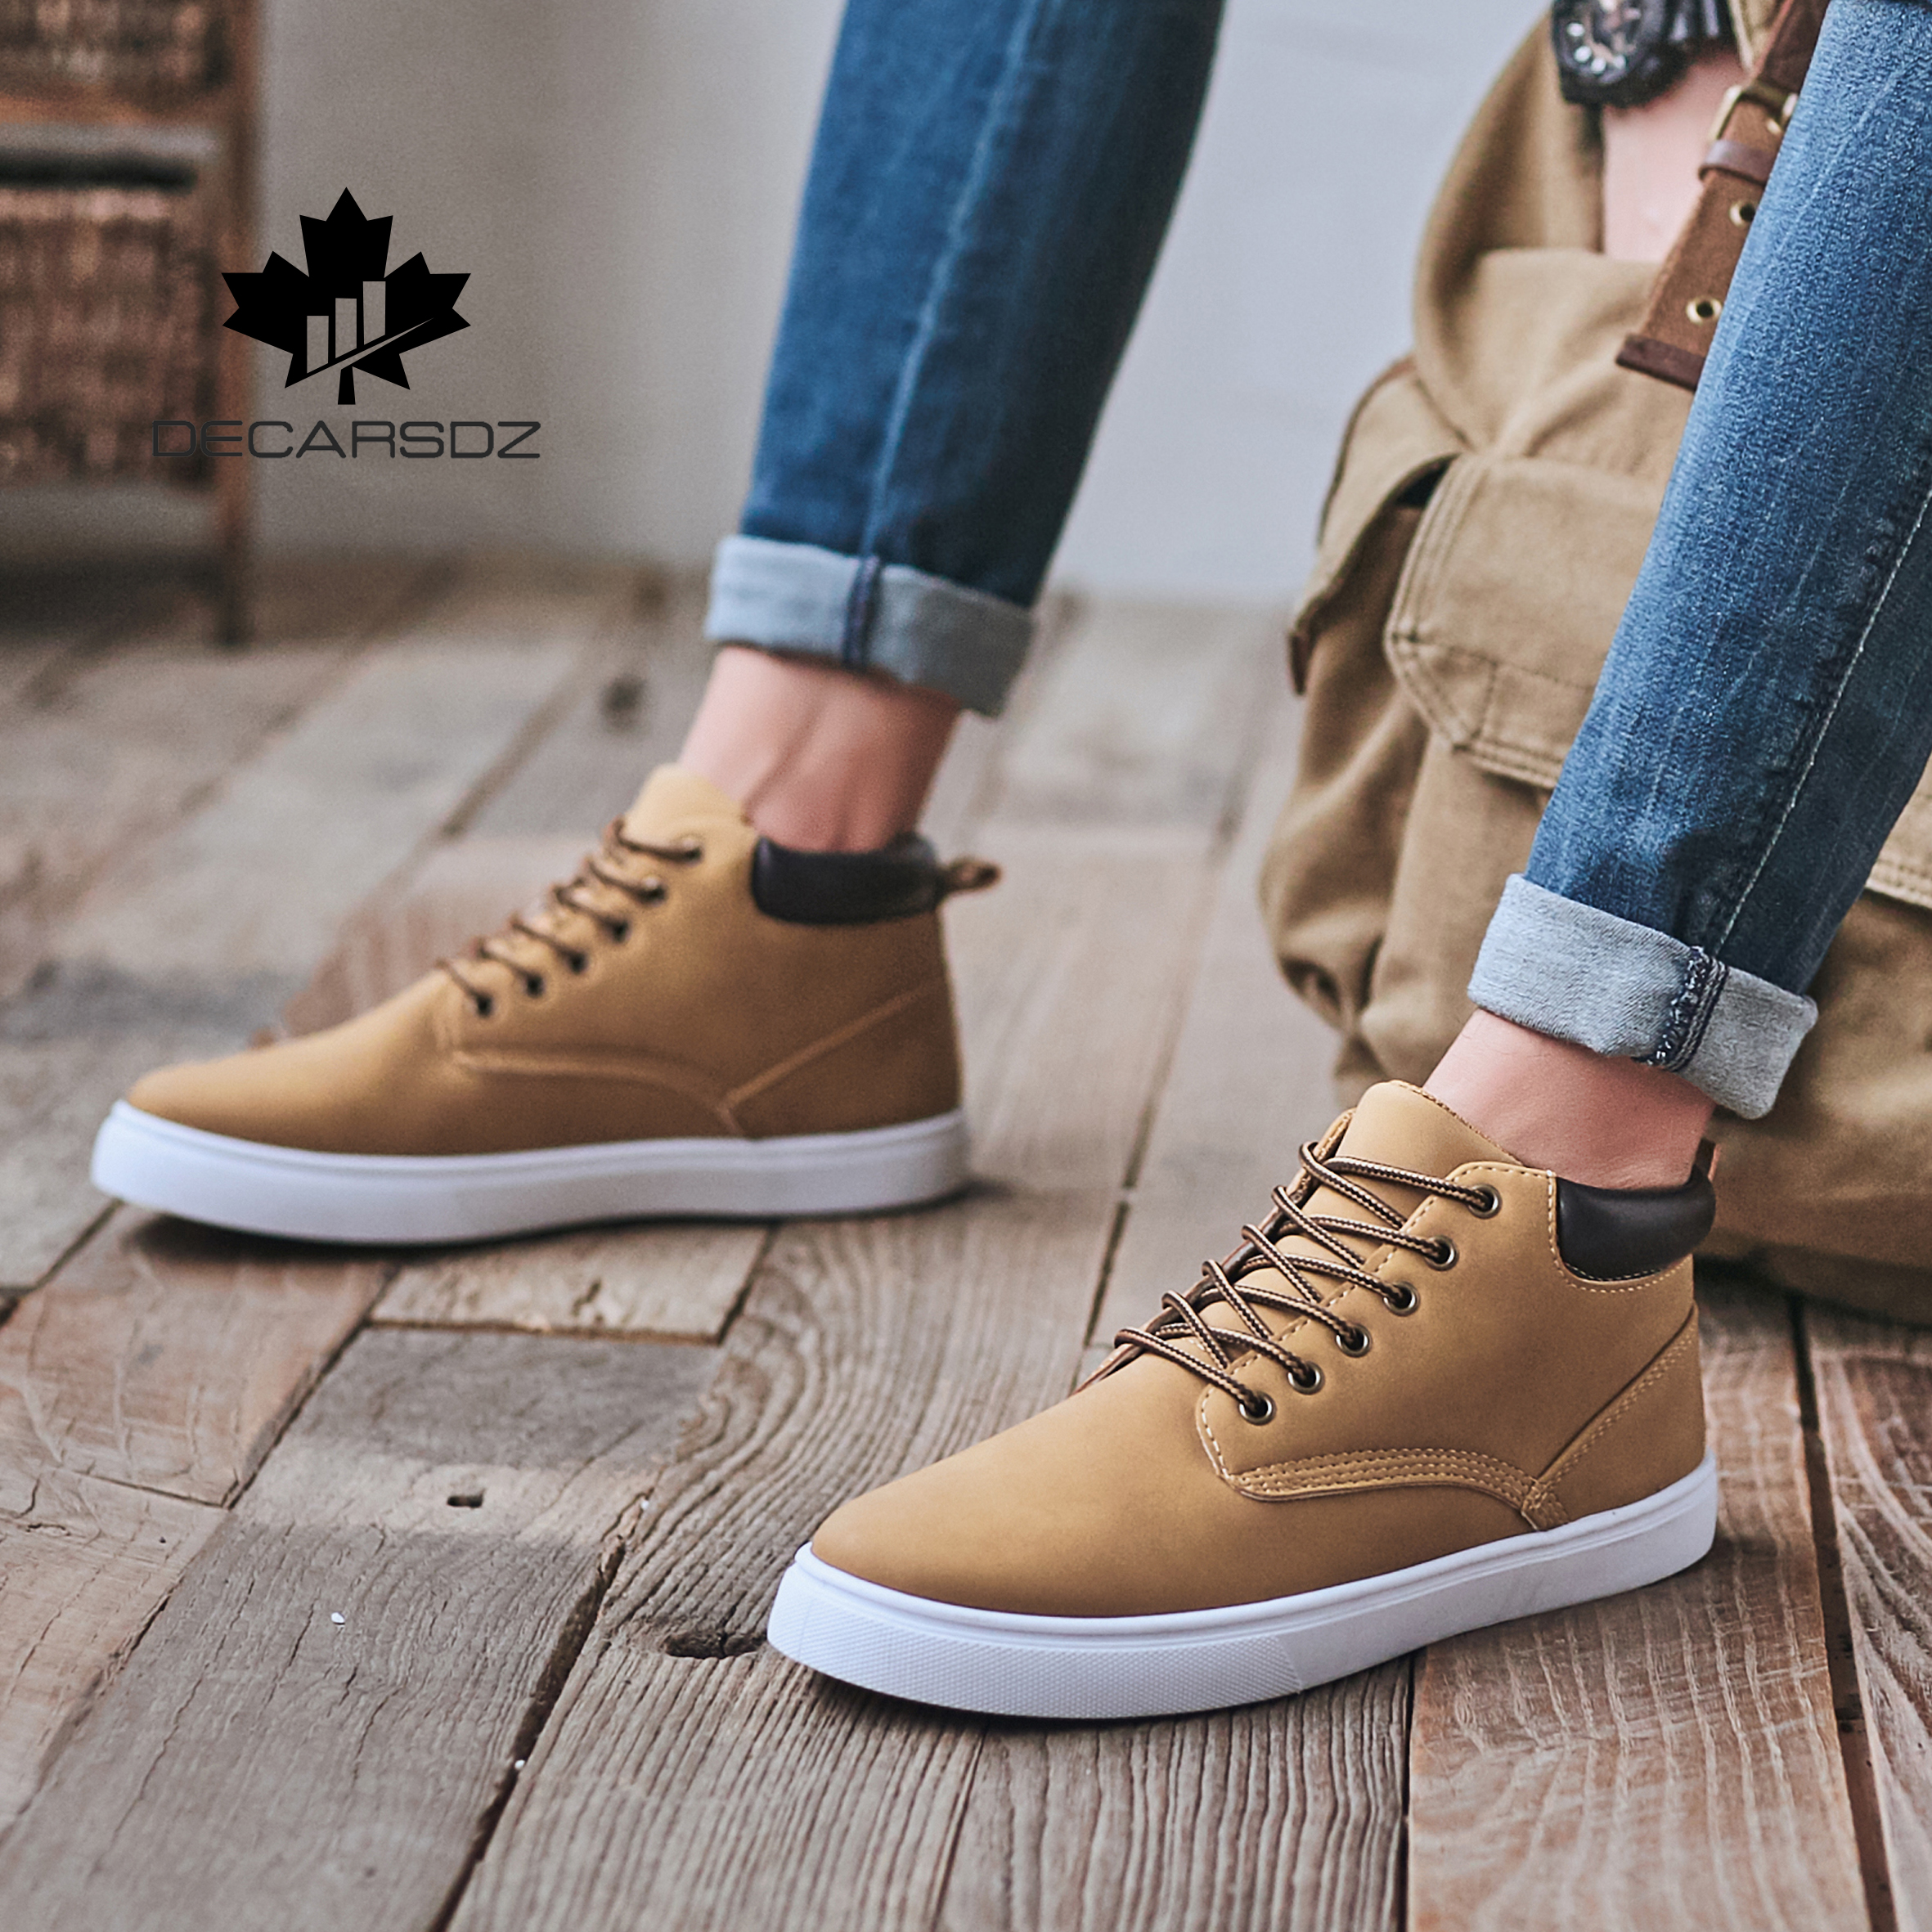 2020 Casual Boots Shoes Man Spring Autumn flat Men Boots Comfy Lace-up Designers Popular Style Basic Boots Men Casual Shoes 2